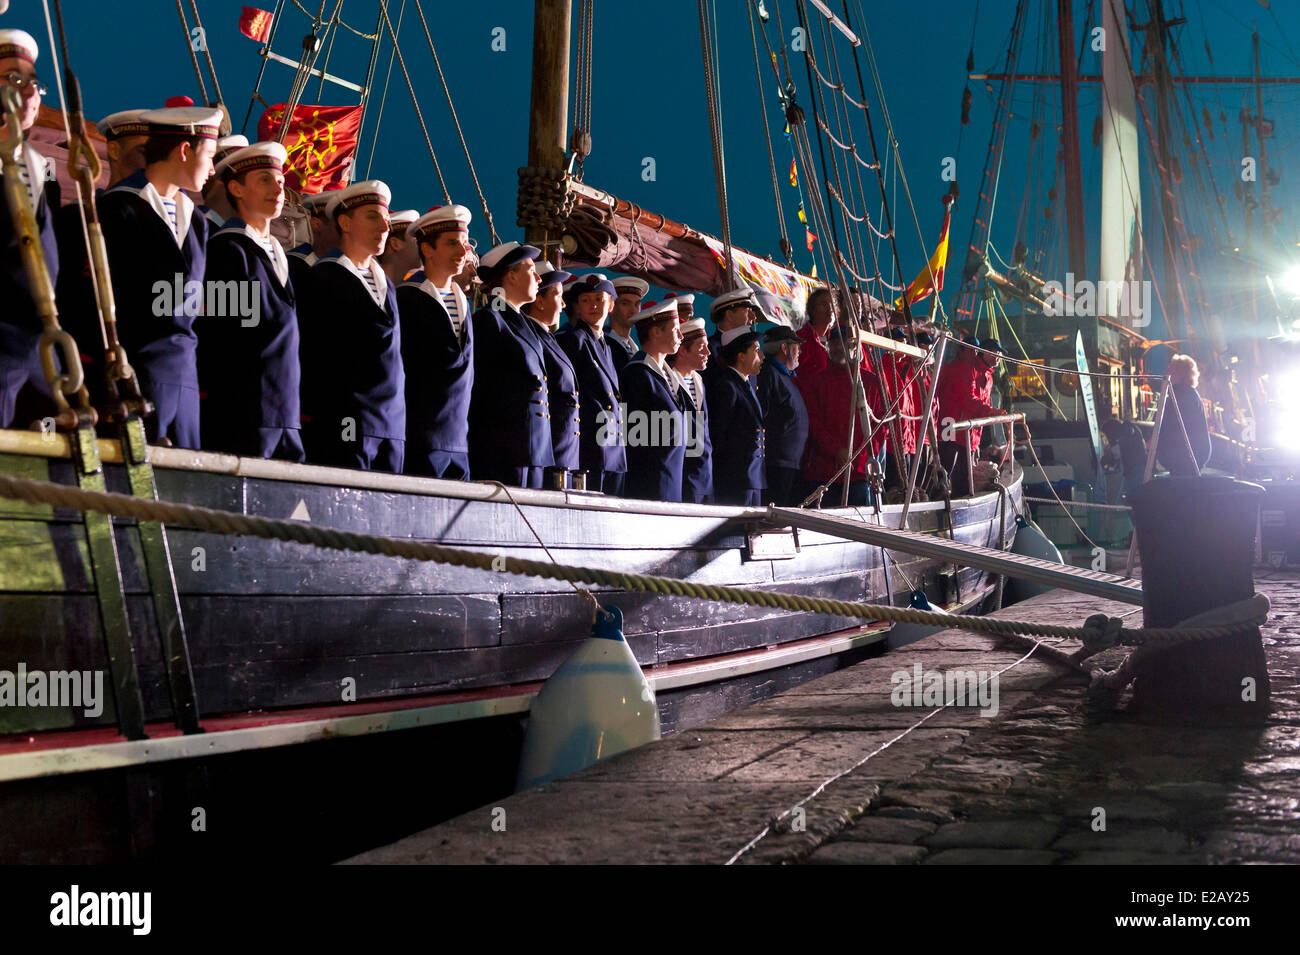 France, Herault, Sete, Quai du General Durand, Maritime Traditions Festival, the National Marine crew in rank aboard - Stock Image